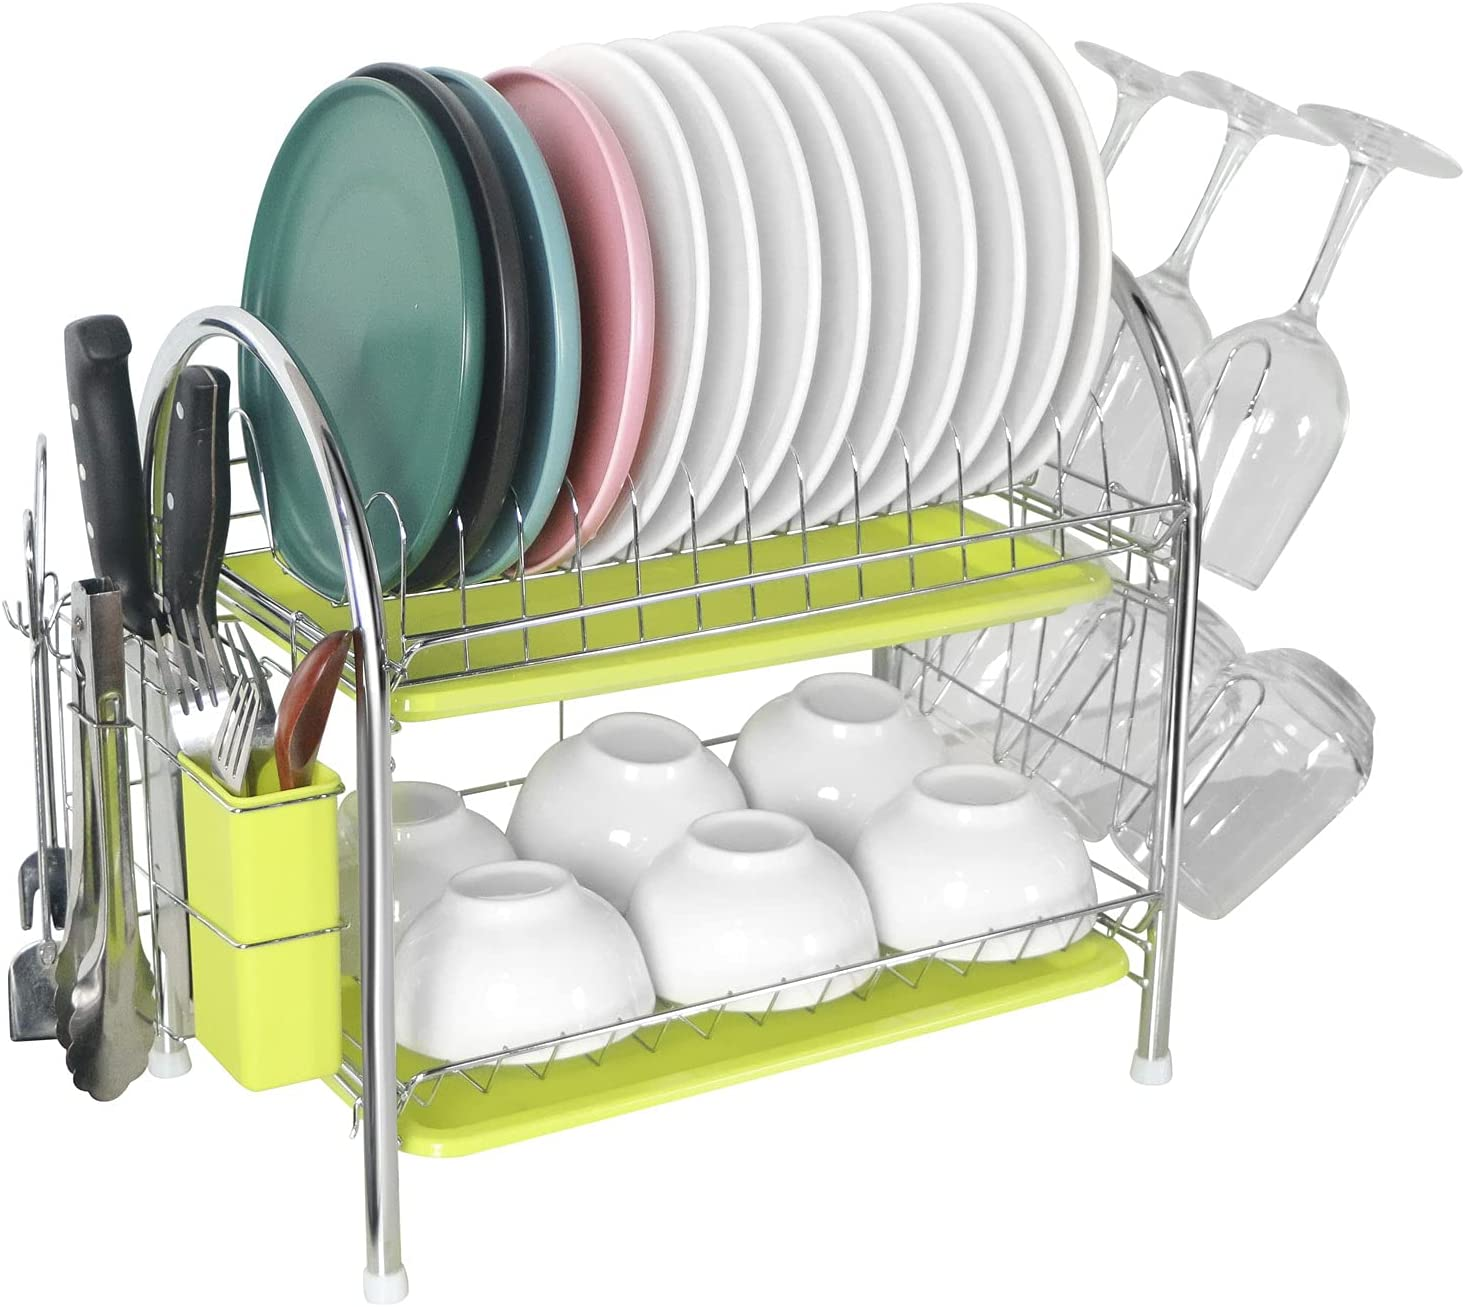 Dish Under blast sales Drying Rack YESURPRISE Stainless an Tier Steel 2 New product type